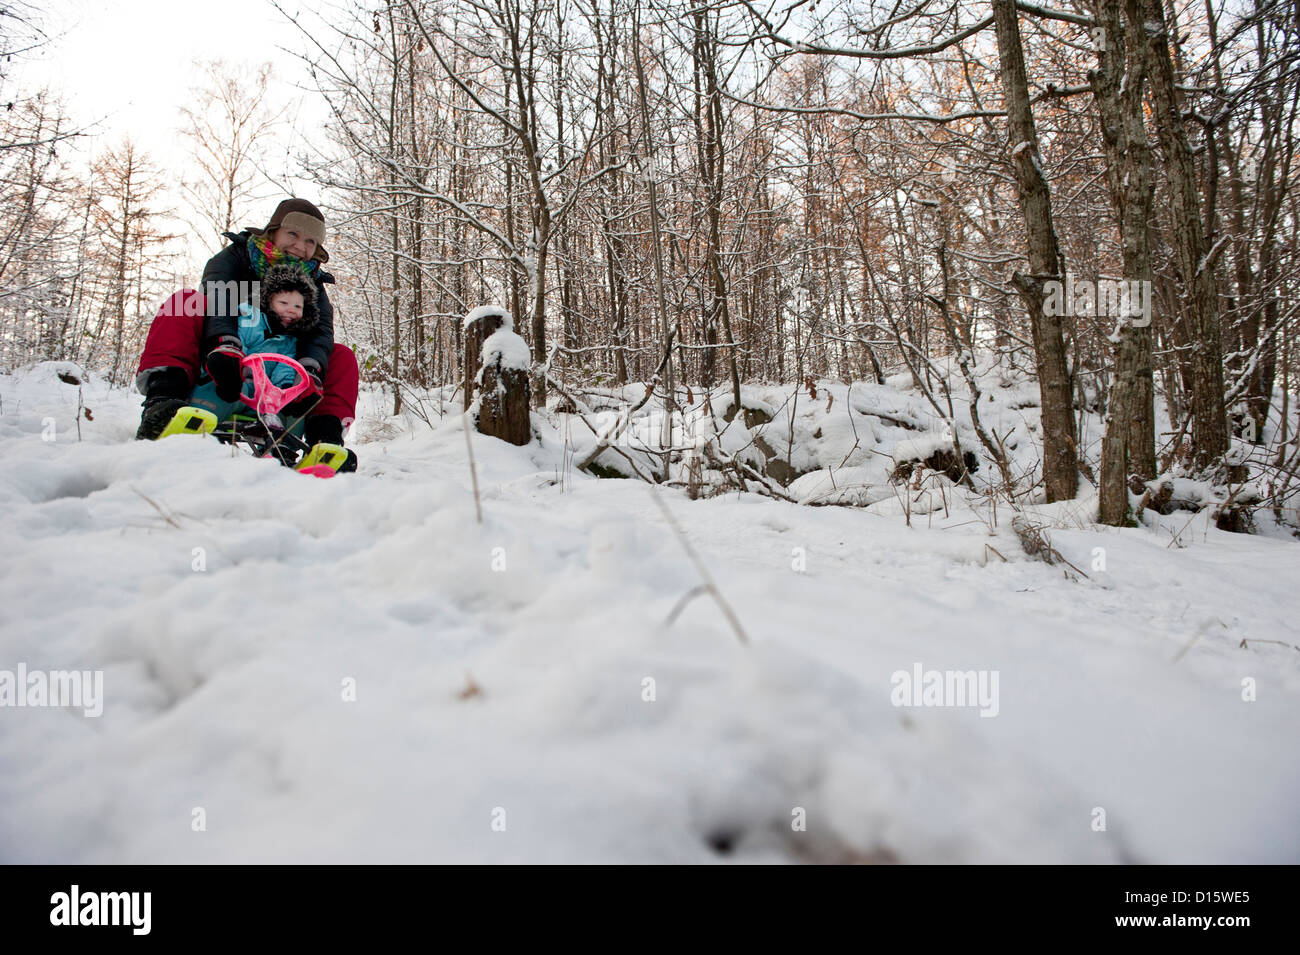 Mother and child going downhill on a snow sledge - Stock Image